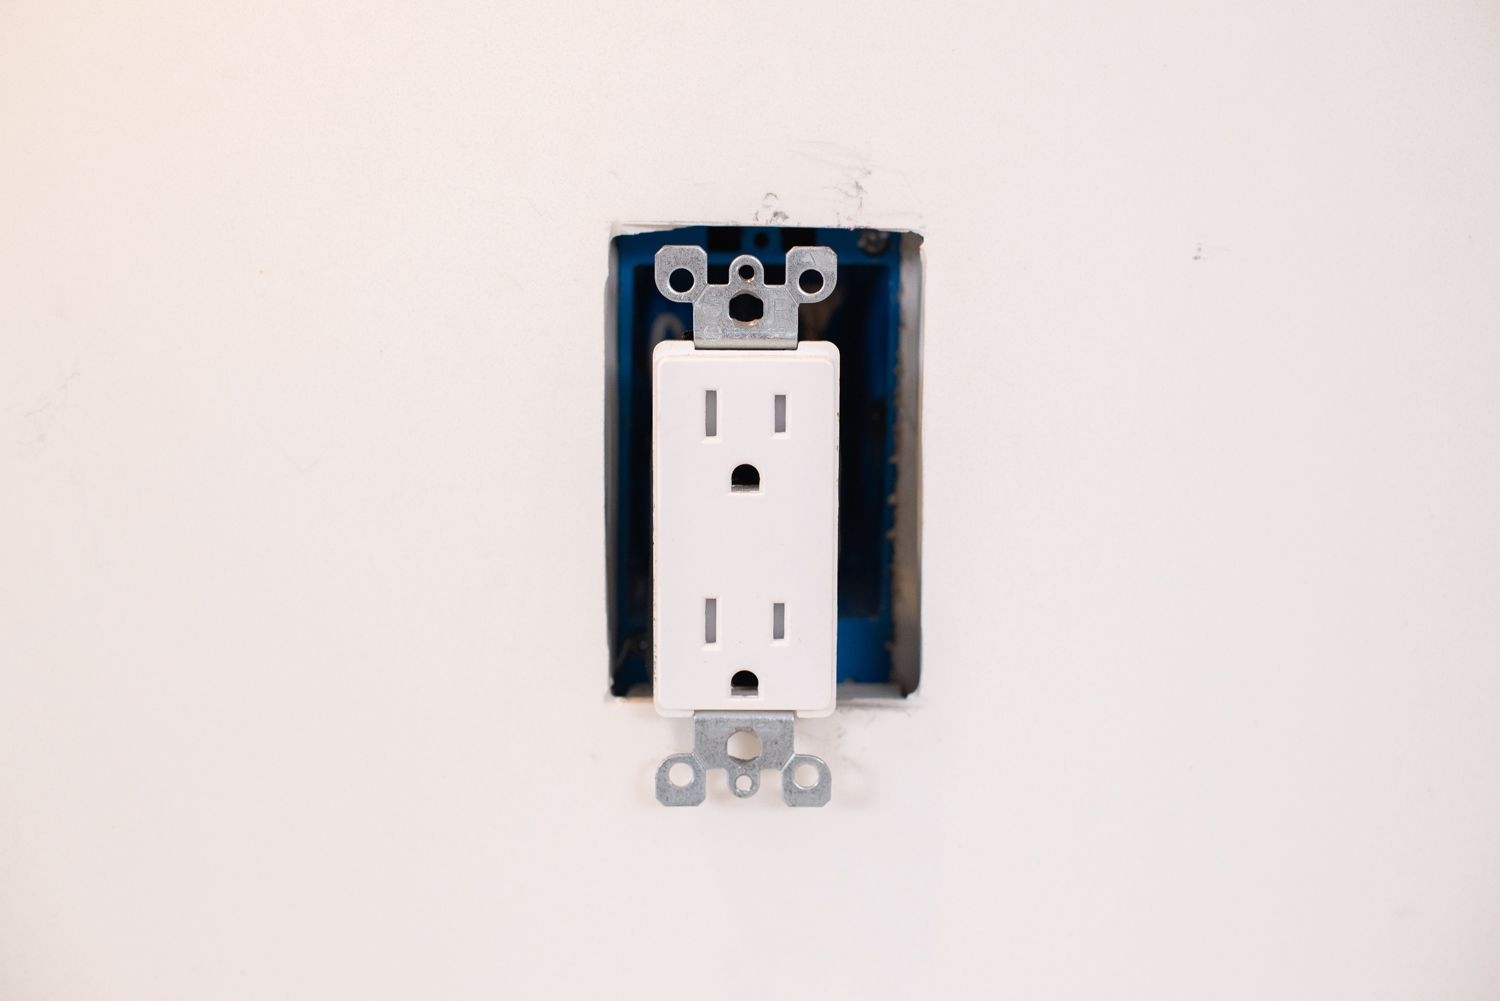 How To Wire And Install An Electrical Outlet Conductor At Plug Or Wall Receptacle